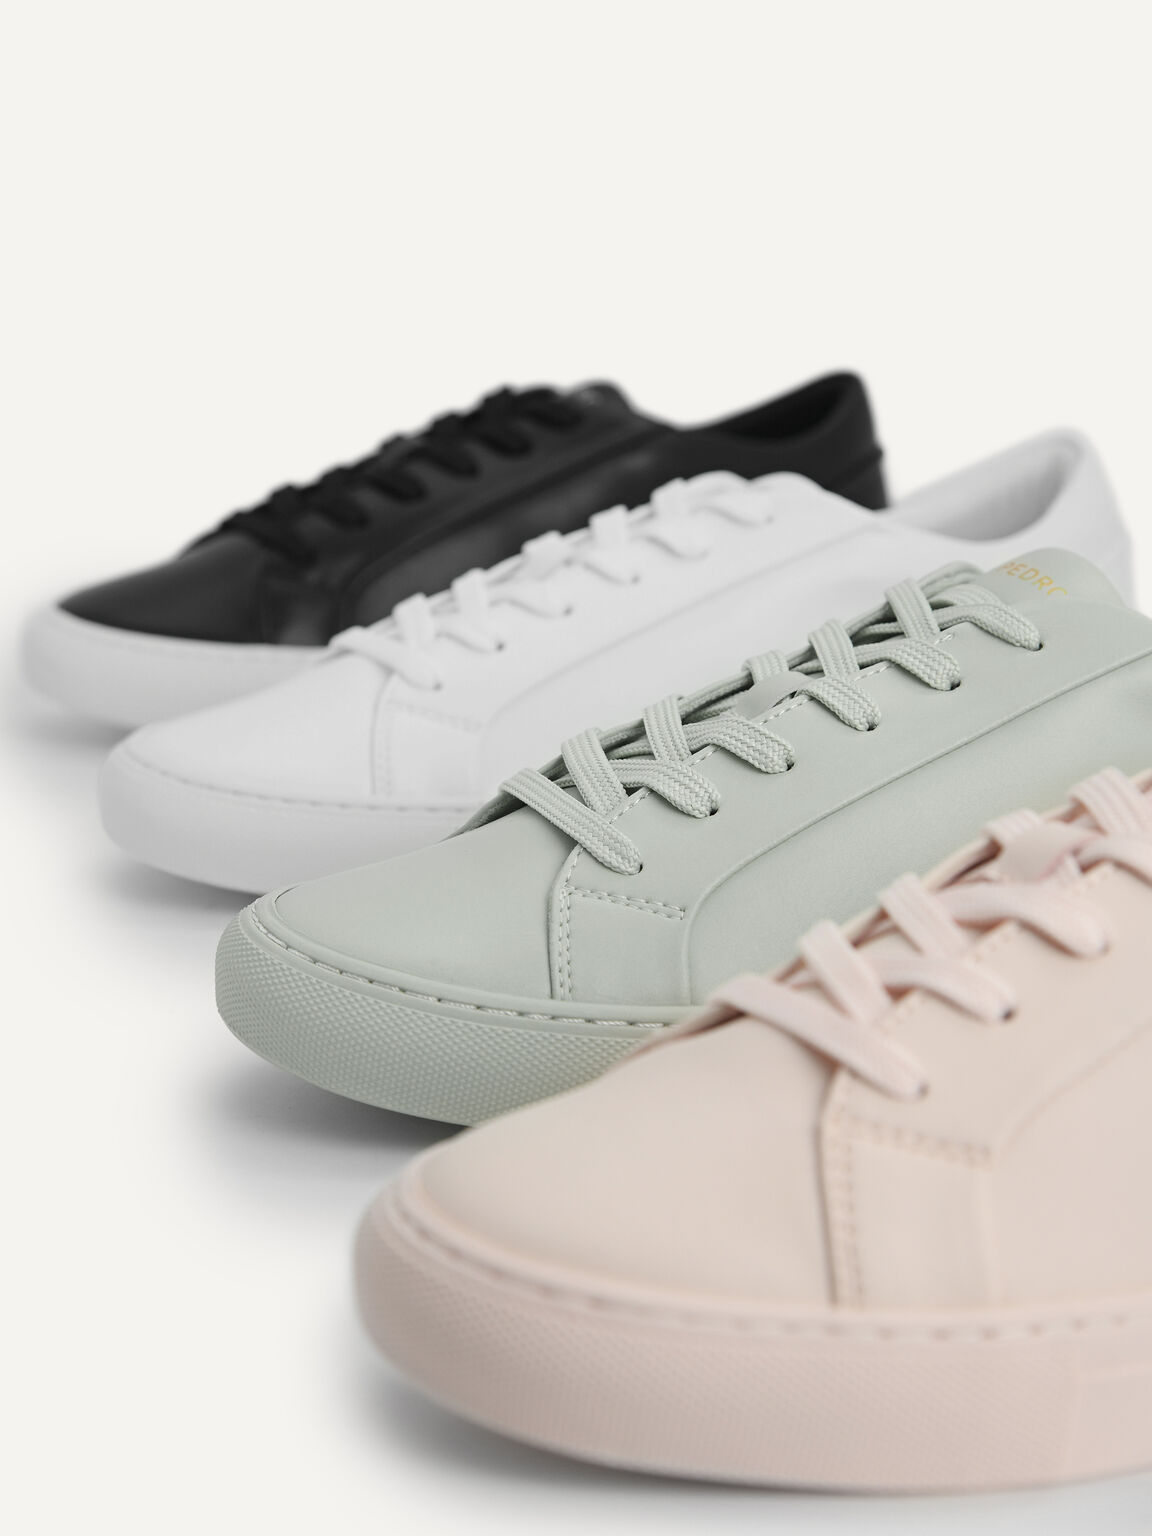 Atlas Lace-up Sneakers, White, hi-res